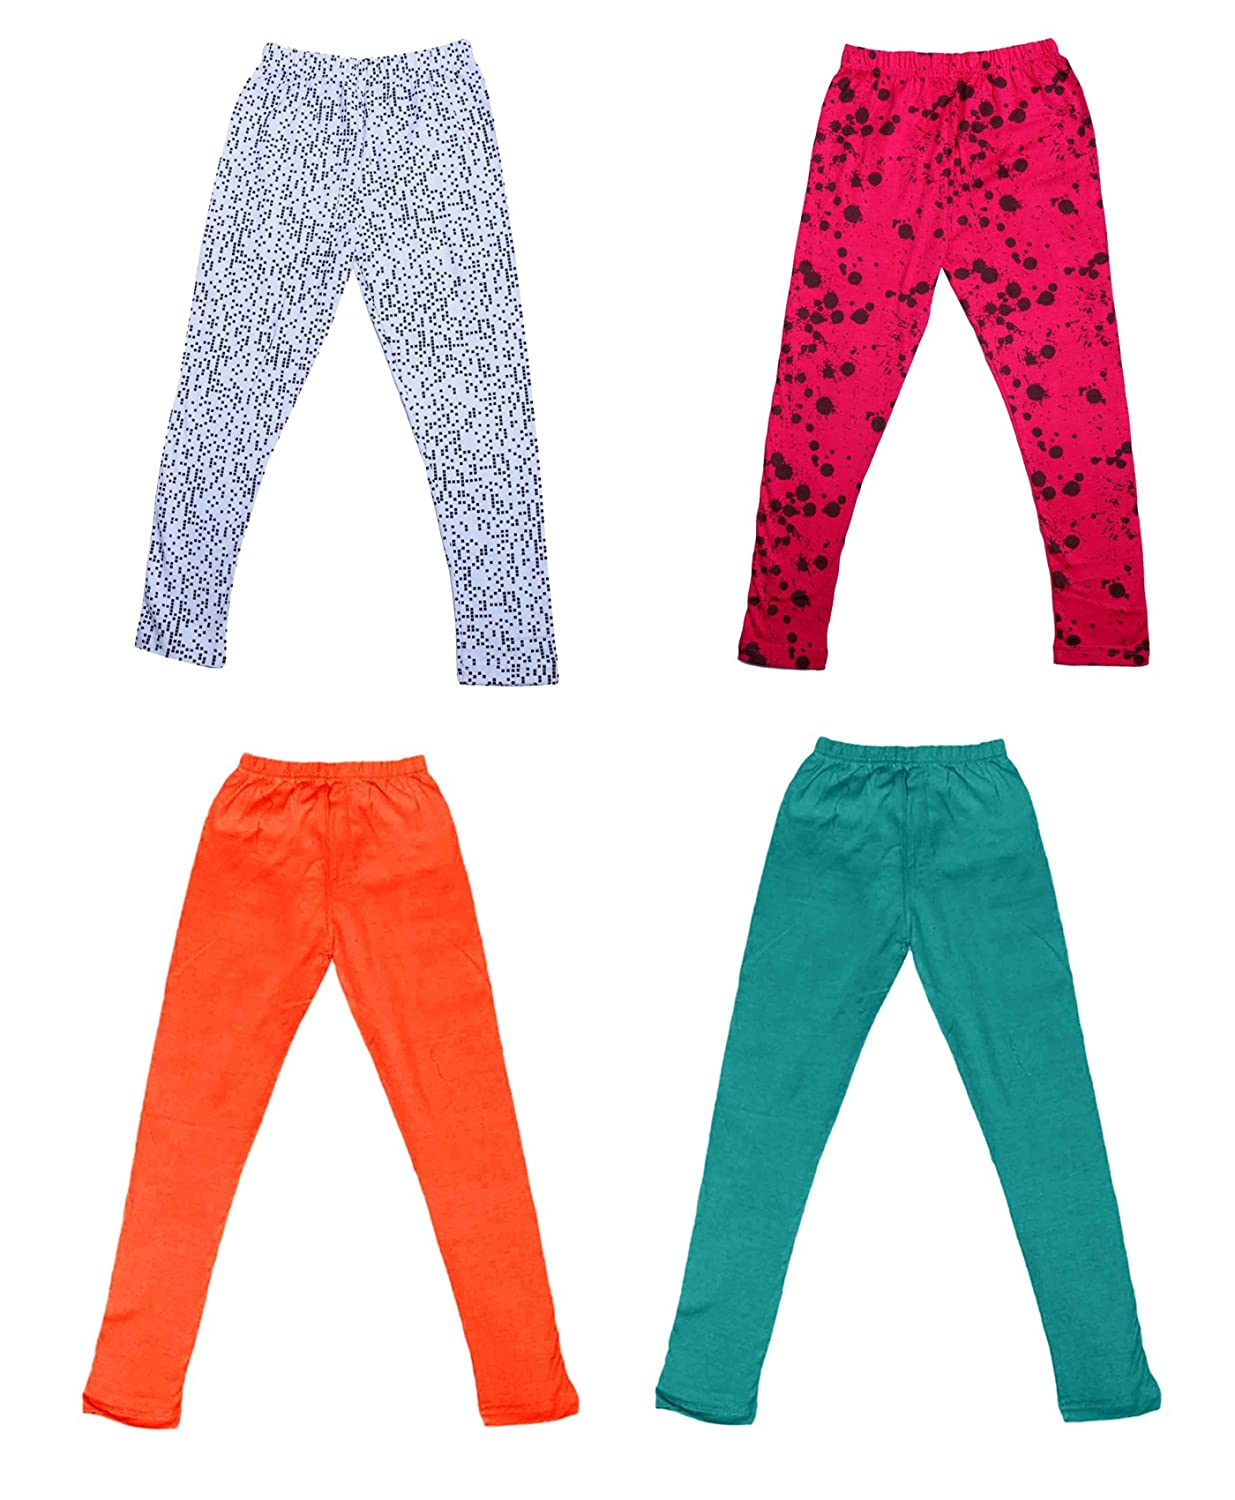 Pack Of 4 /_Multicolor/_Size-13-14 Years/_71414152021-IW-P4-36 Indistar Girls 2 Cotton Solid Legging Pants and 2 Cotton Printed Legging Pants